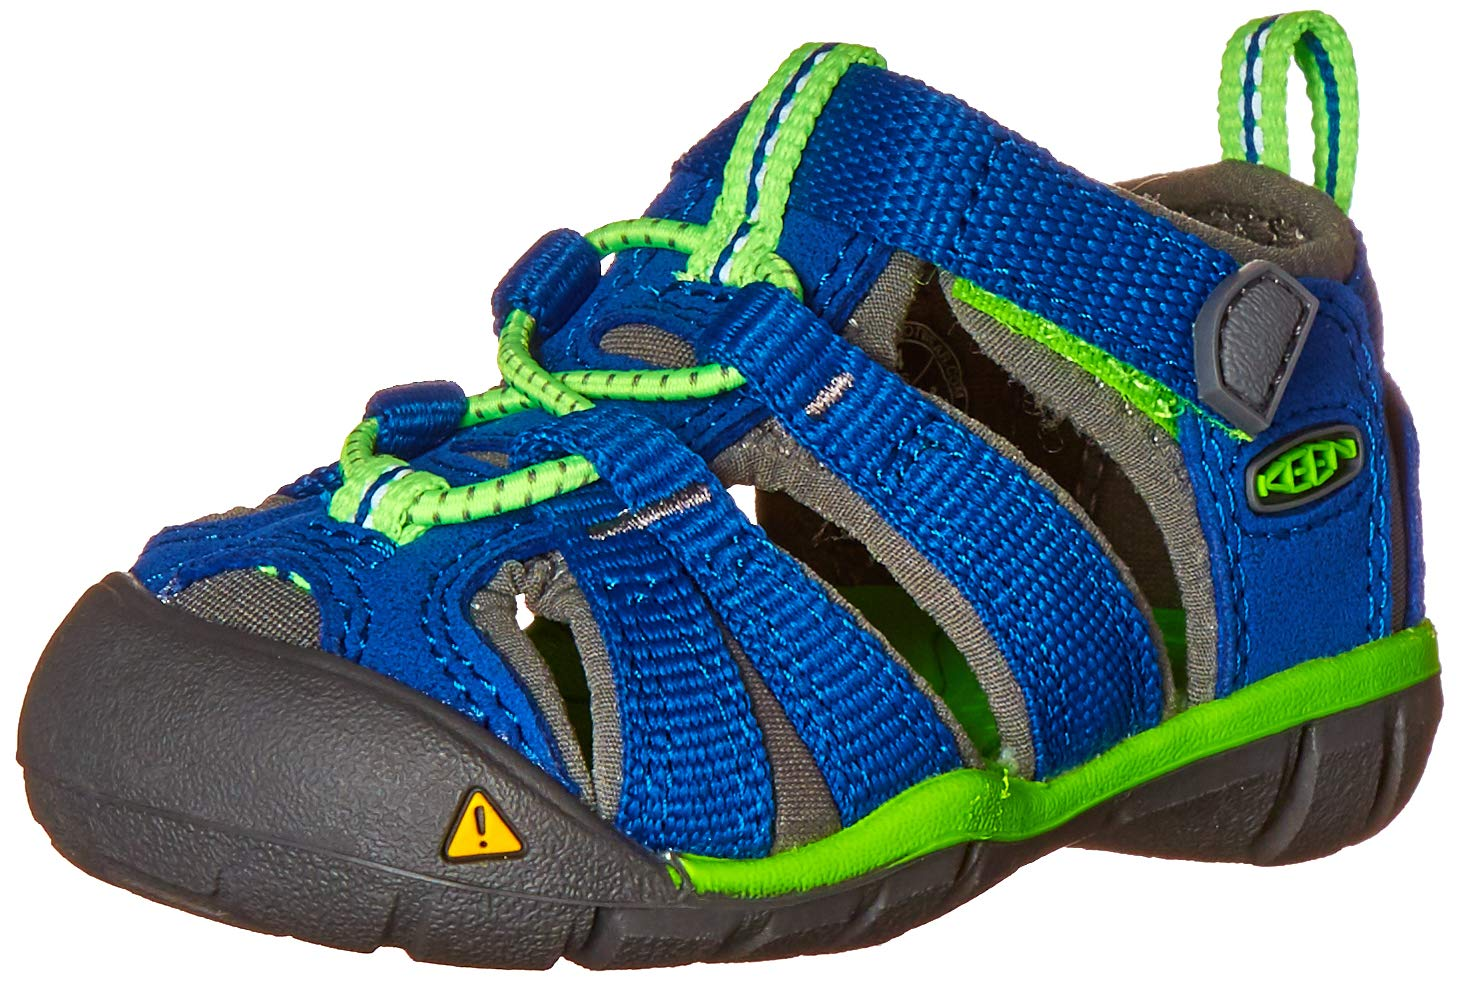 KEEN Unisex-Child Seacamp II CNX Sandal (Toddler), True Blue/Jasmine Green, 5 M US Toddler